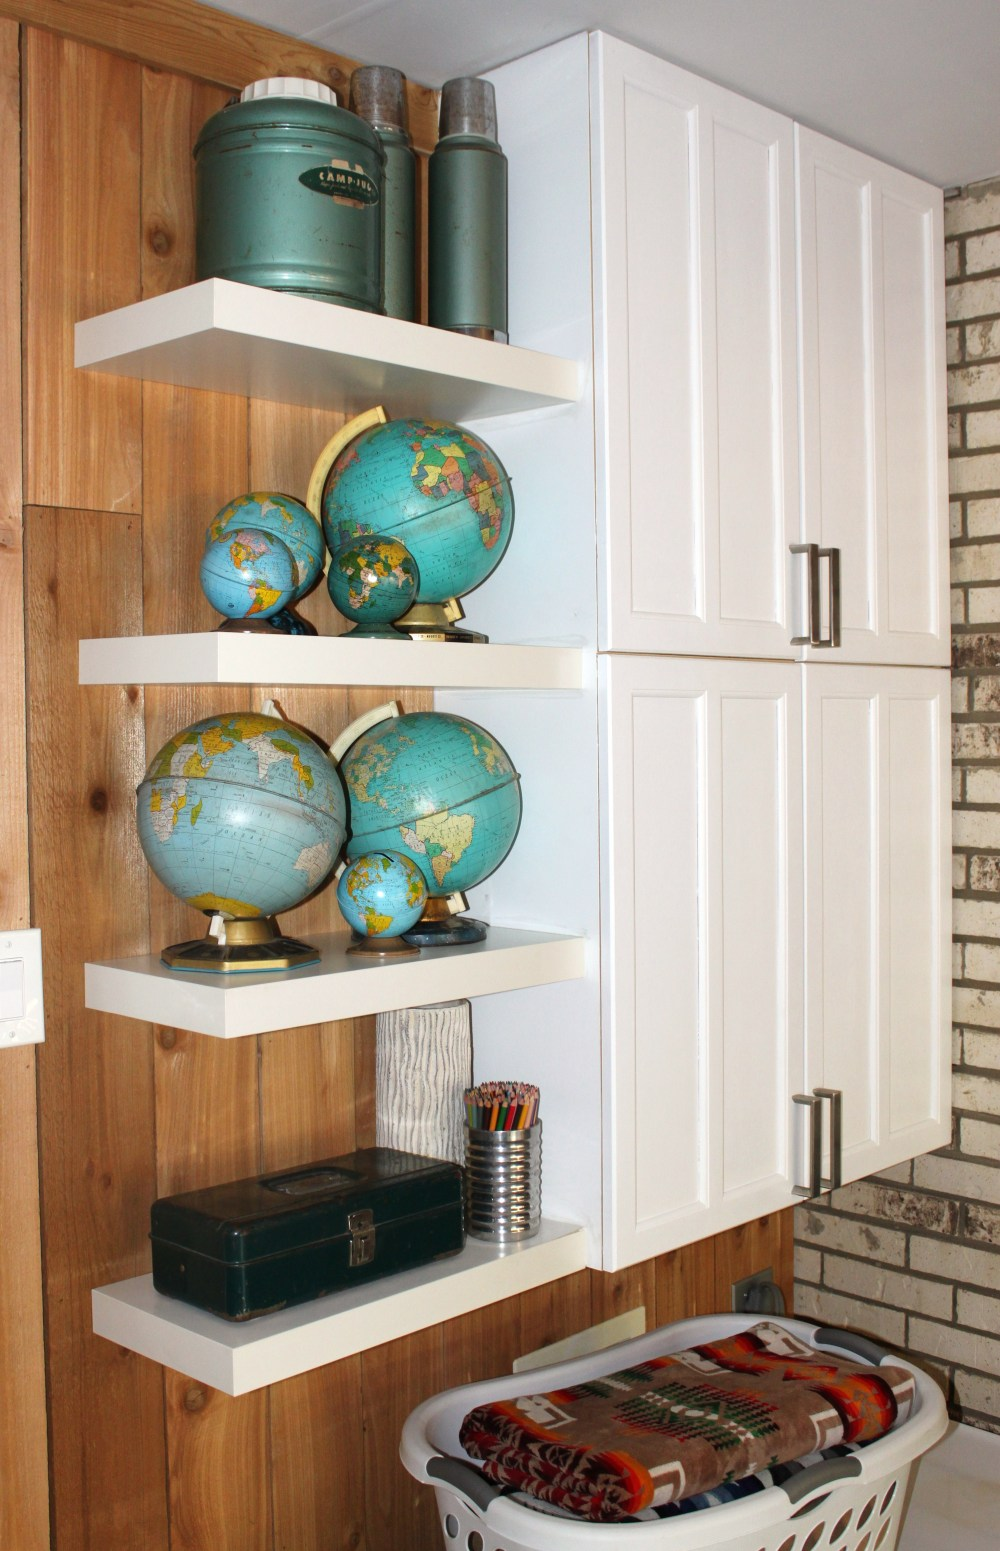 Finished Cabinets with Shelves and Globe Collection